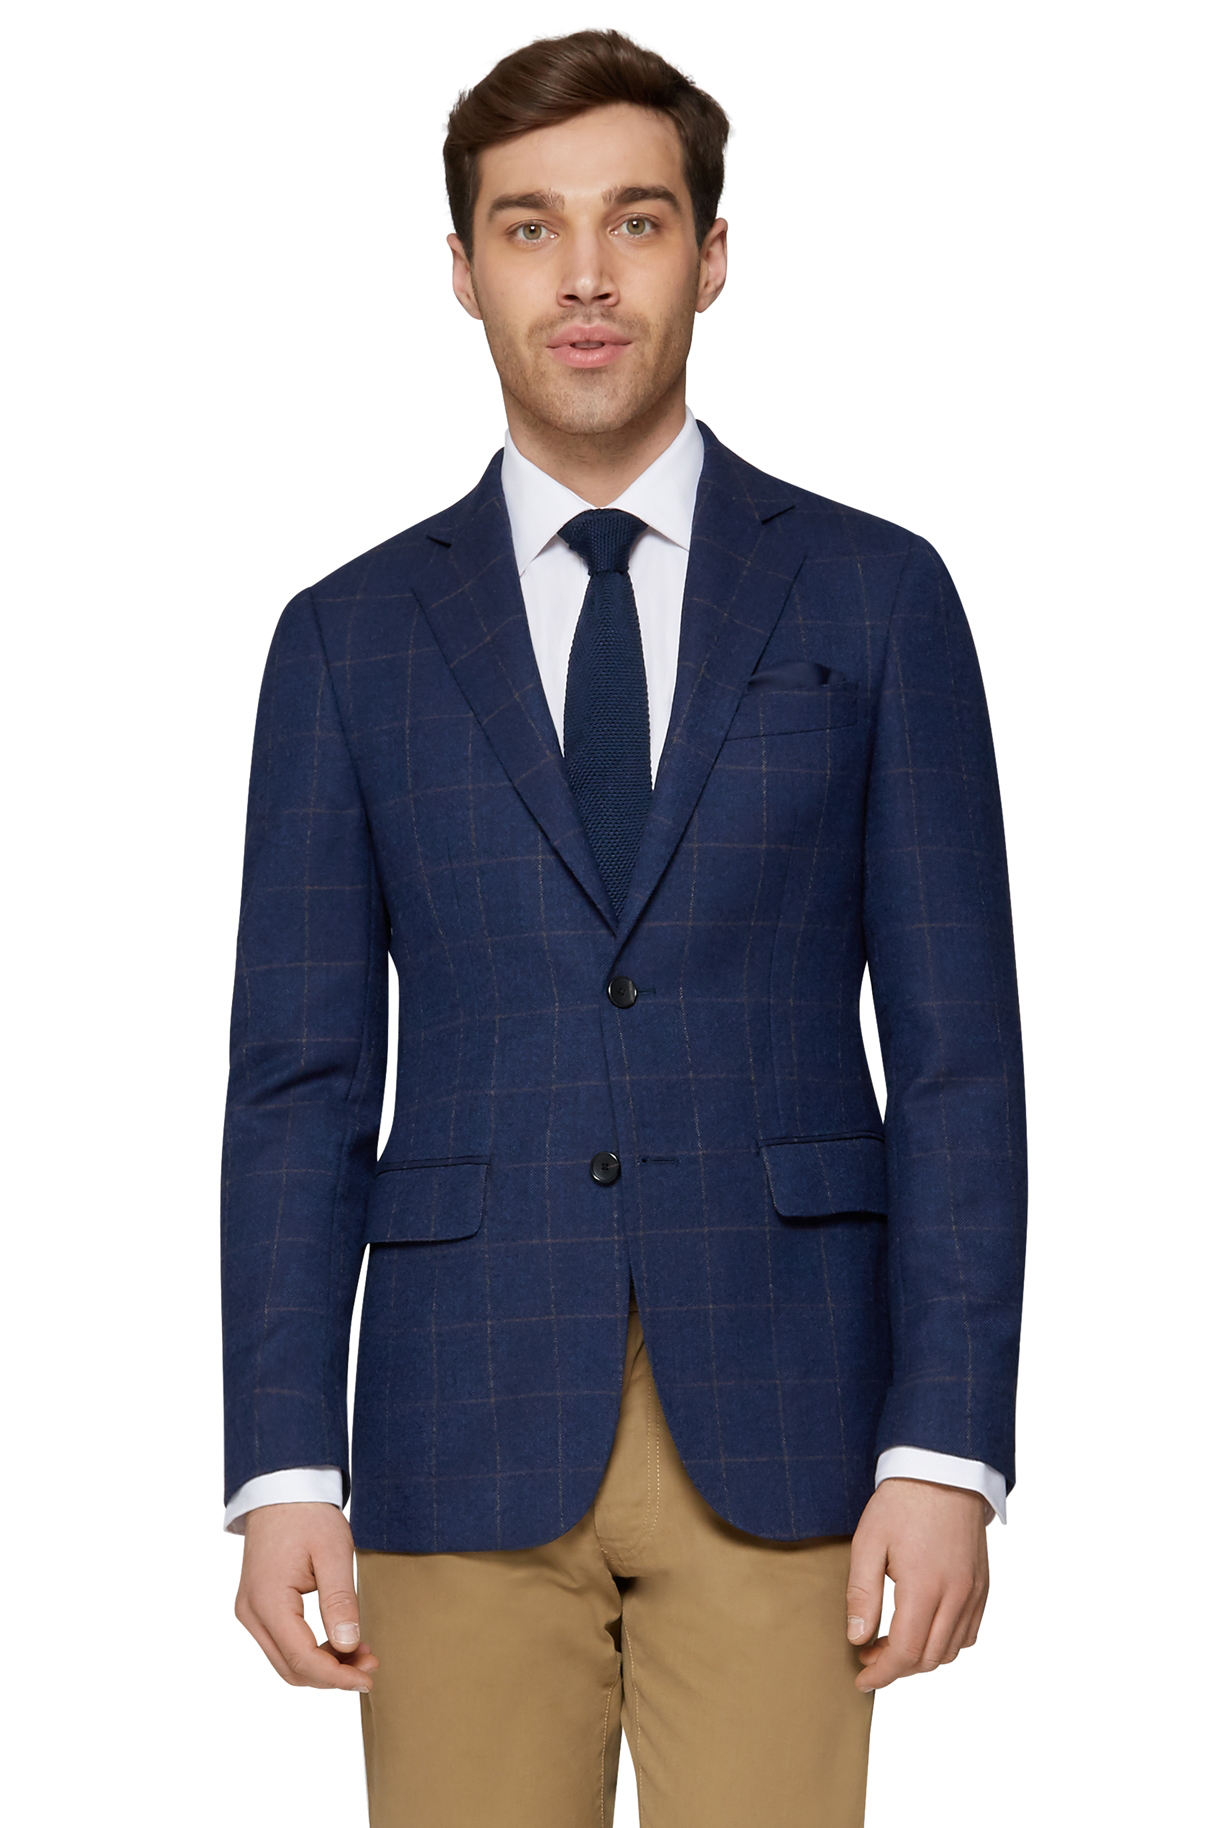 mens brown check suit suit la